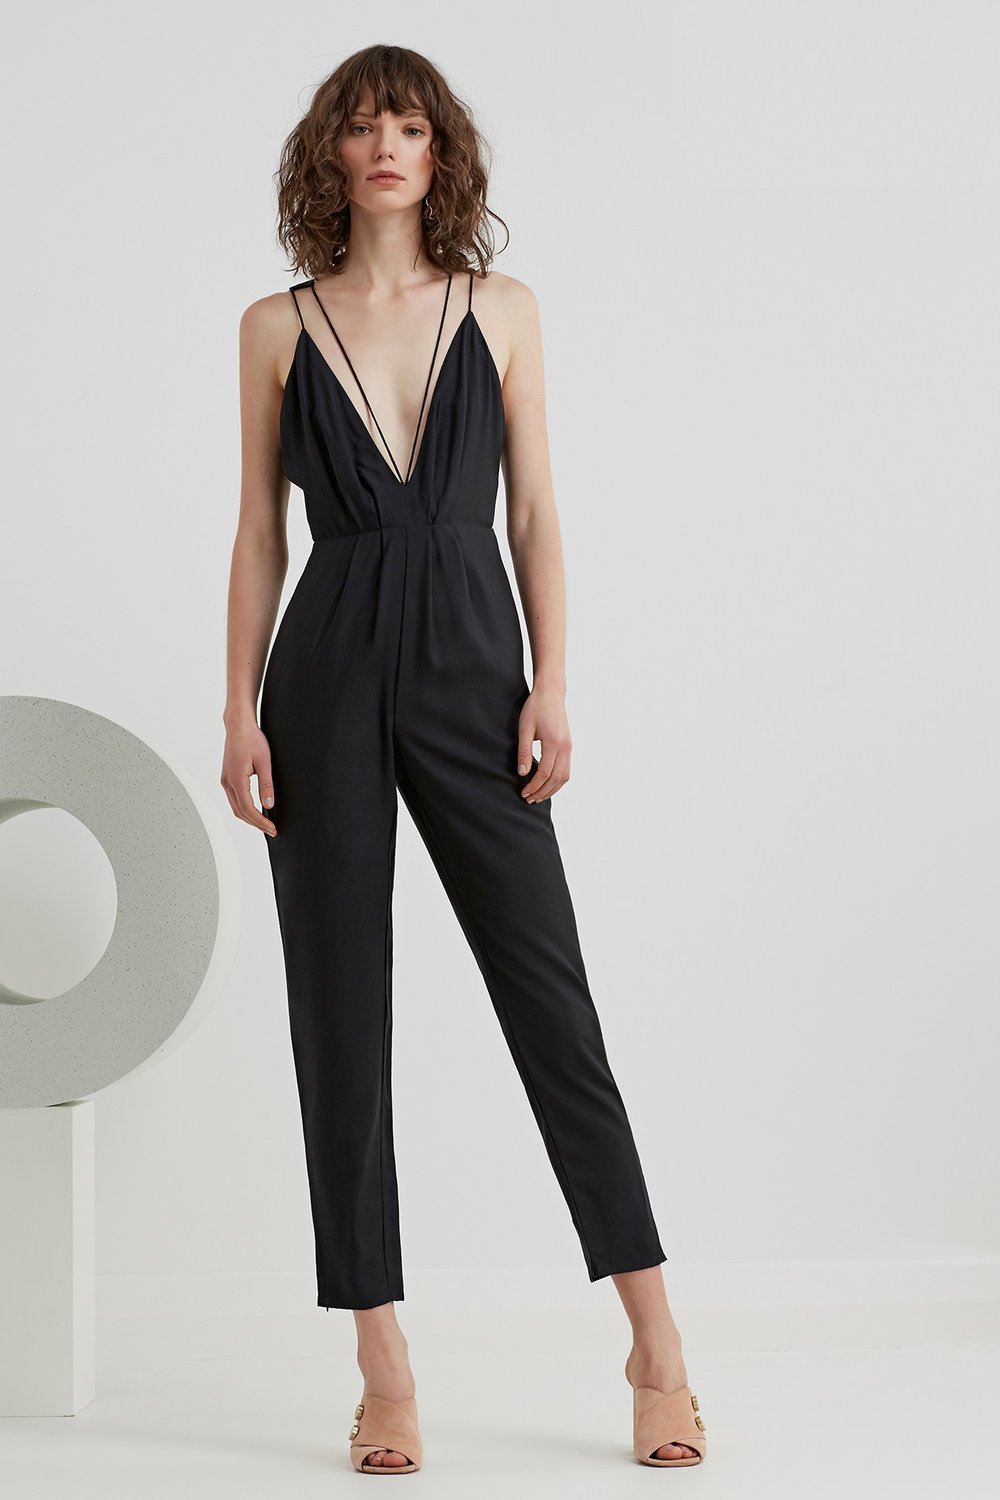 C/MEO Set In Stone Jumpsuit.